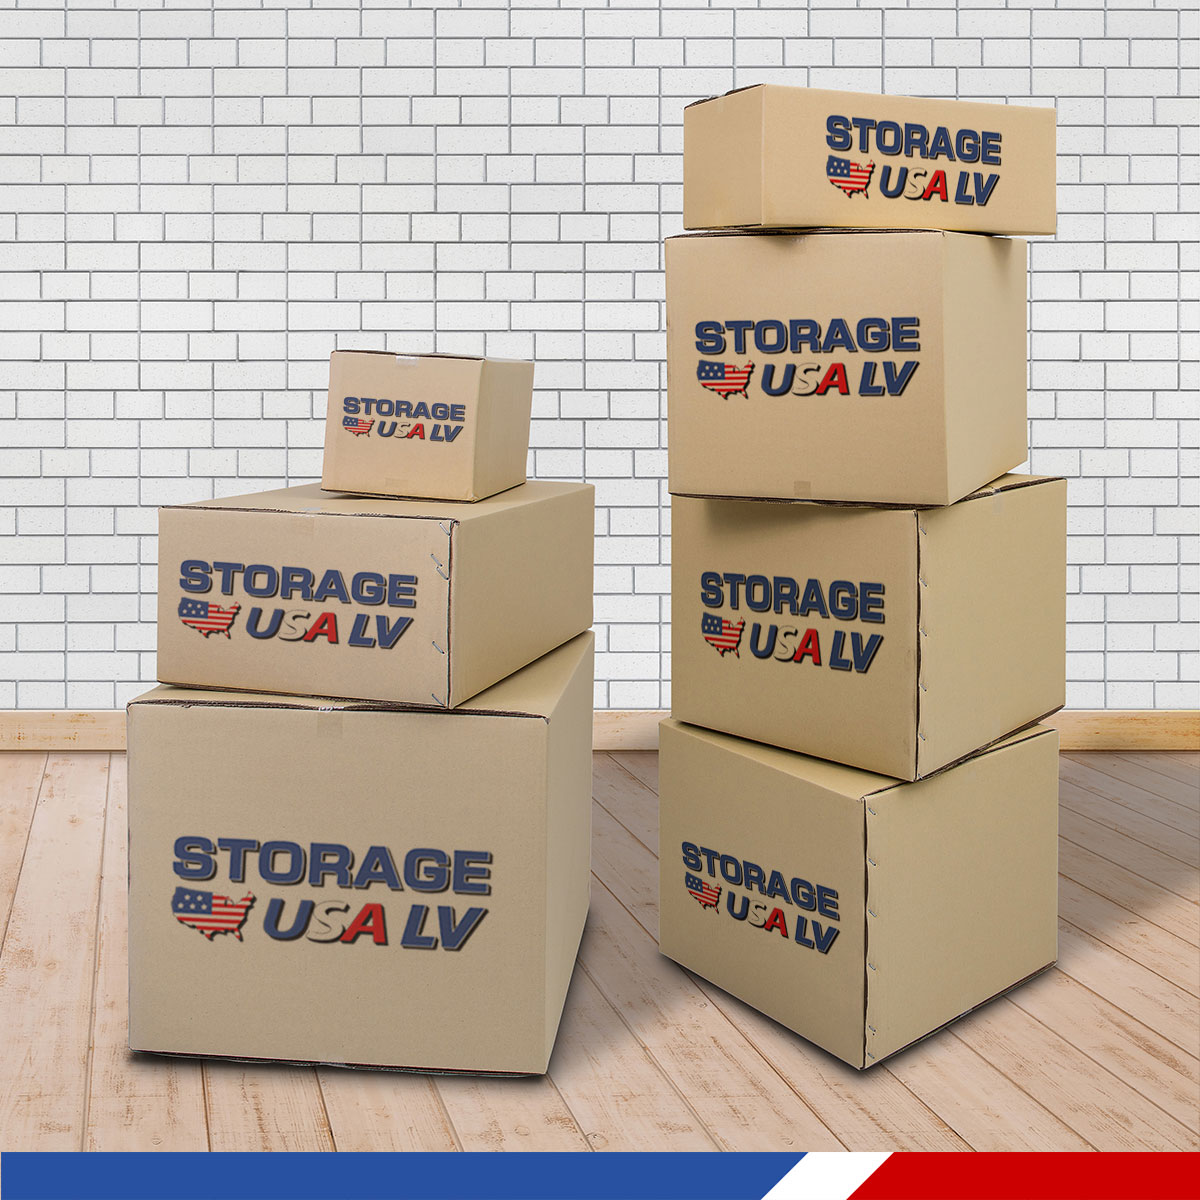 Storage USA LV